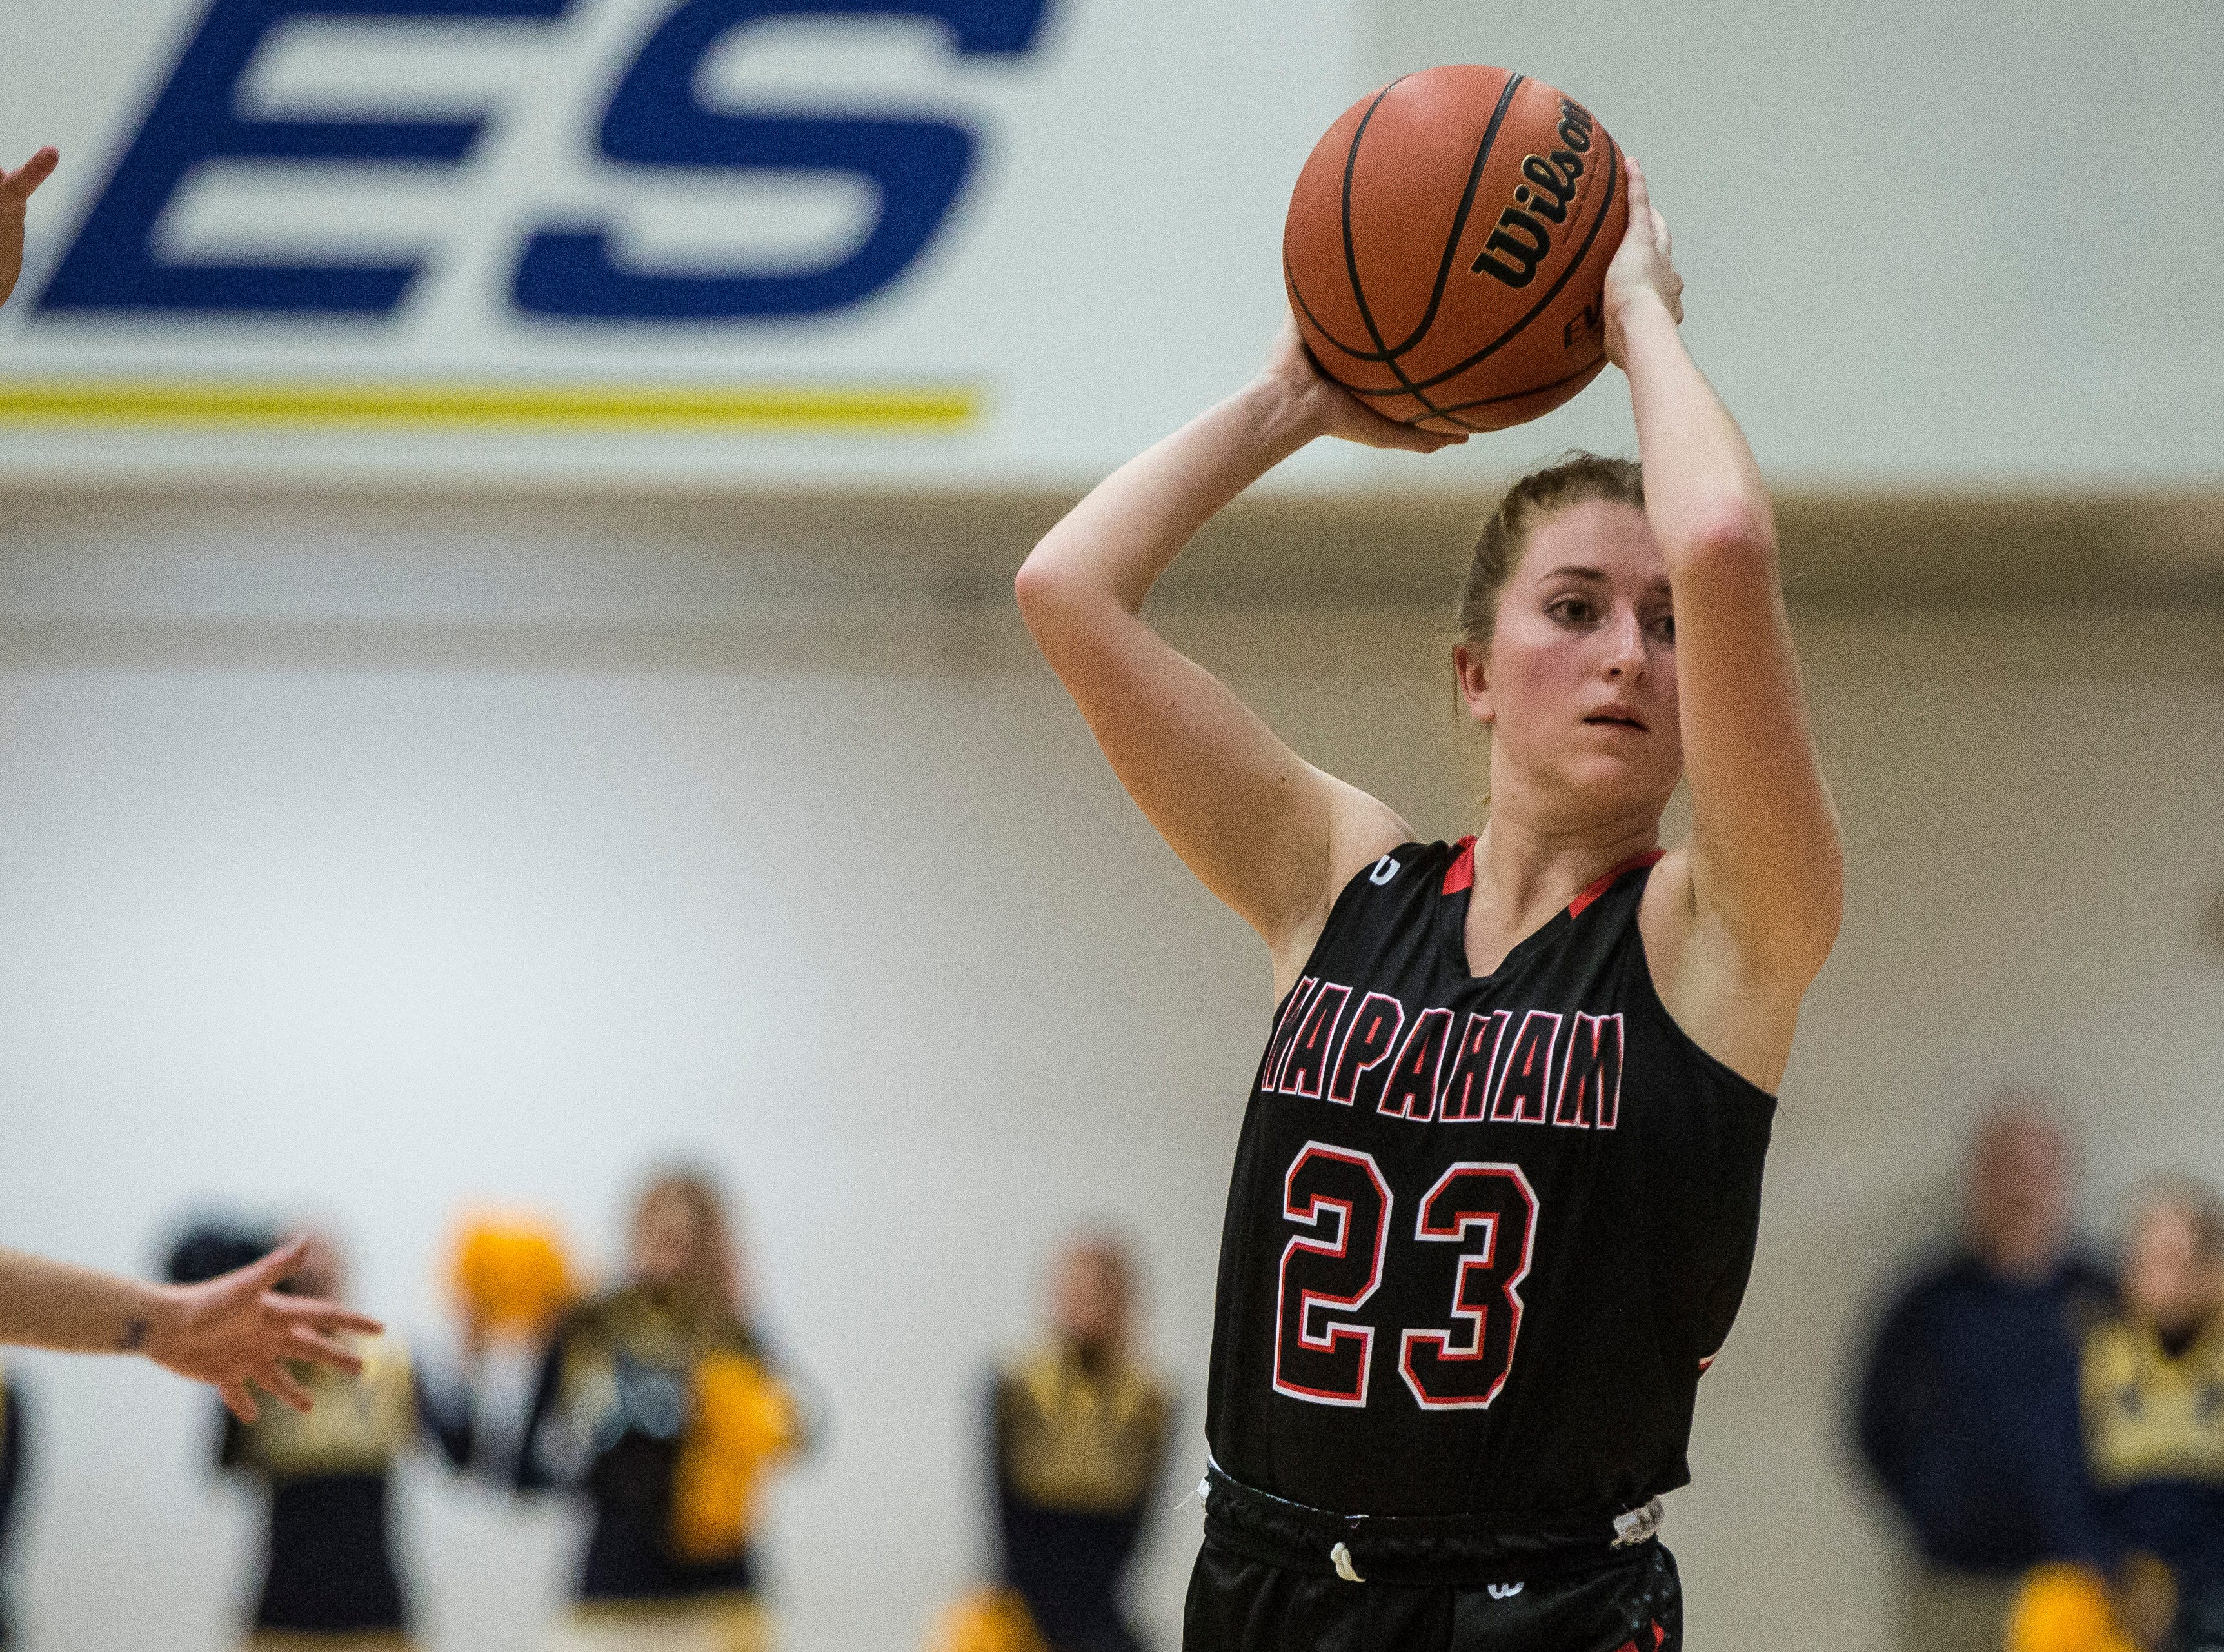 Wapahani's Carlie Boggs looks for an opening to pass during the Delaware County Basketball Tournament Championship Monday evening against Delta. Delta won the title with a final score of 42-32.